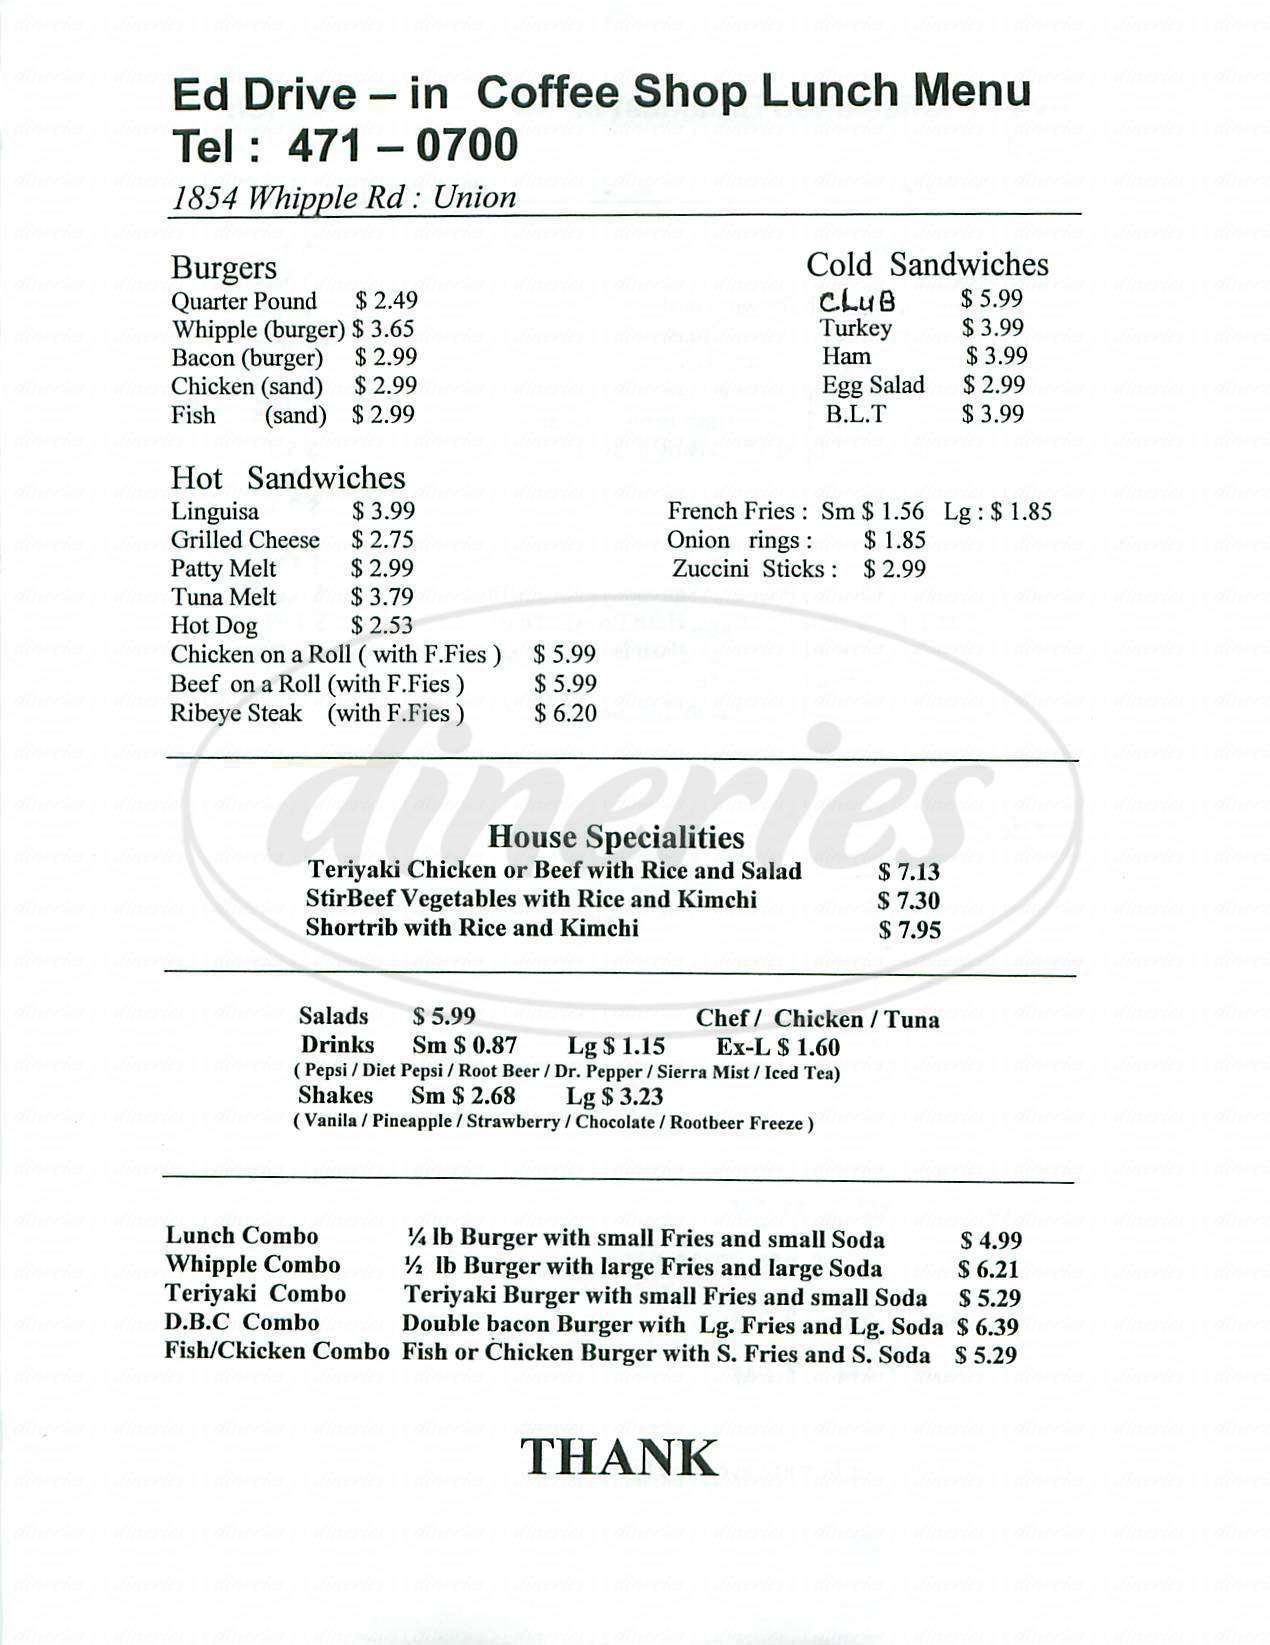 menu for Ed Drive-In Coffee Shop